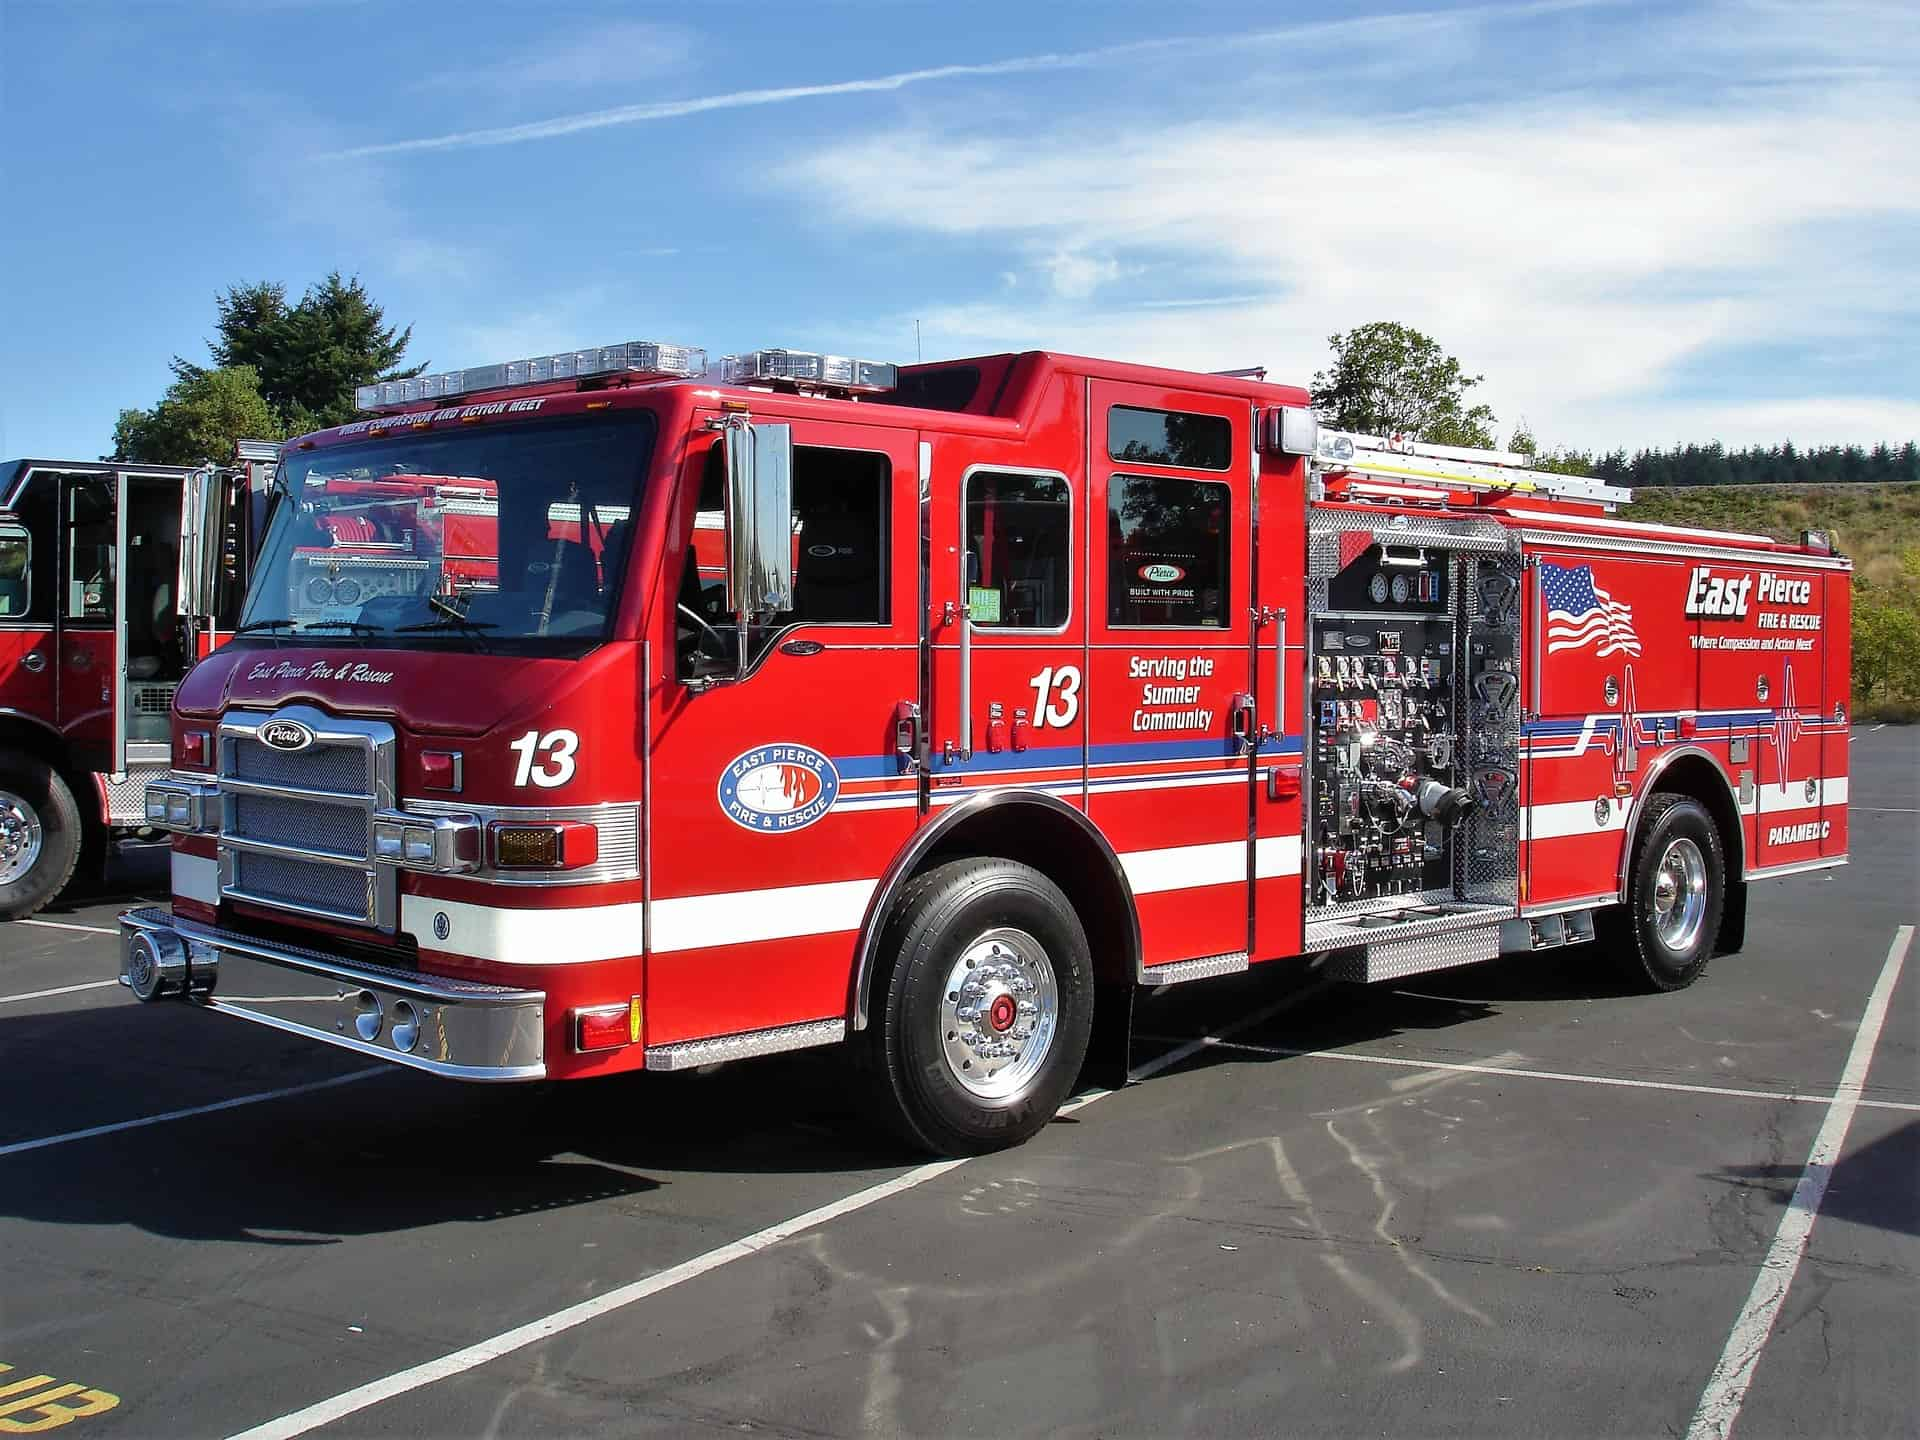 East Pierce Fire Department To Receive 30 Body Armor